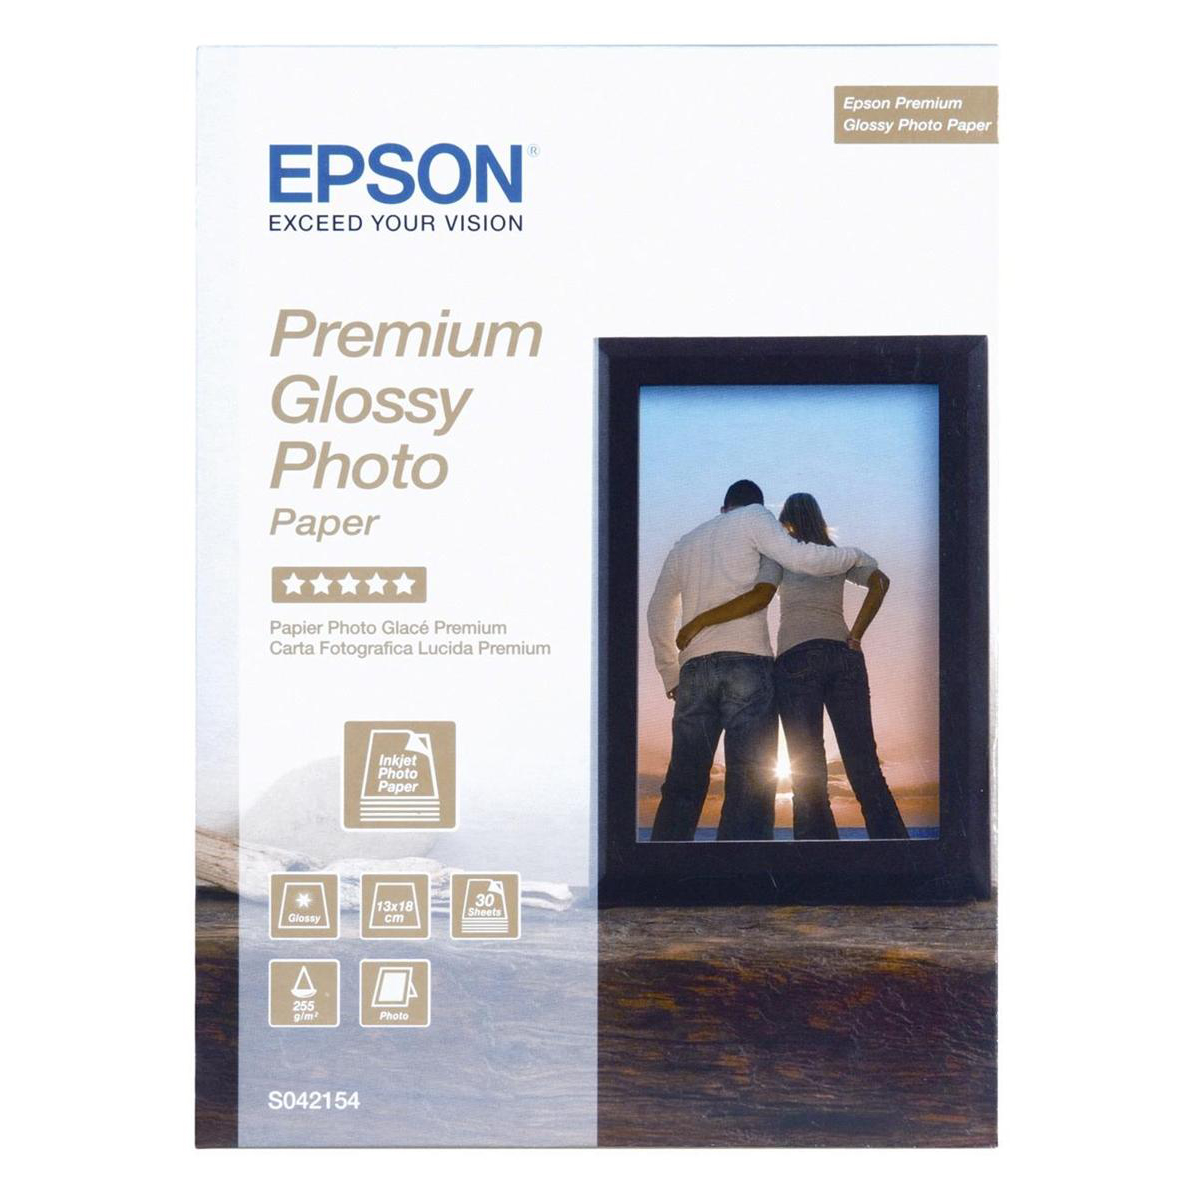 Epson Photo Paper Premium Glossy 255gsm 130x180mm Ref C13S042154 [30 Sheets]